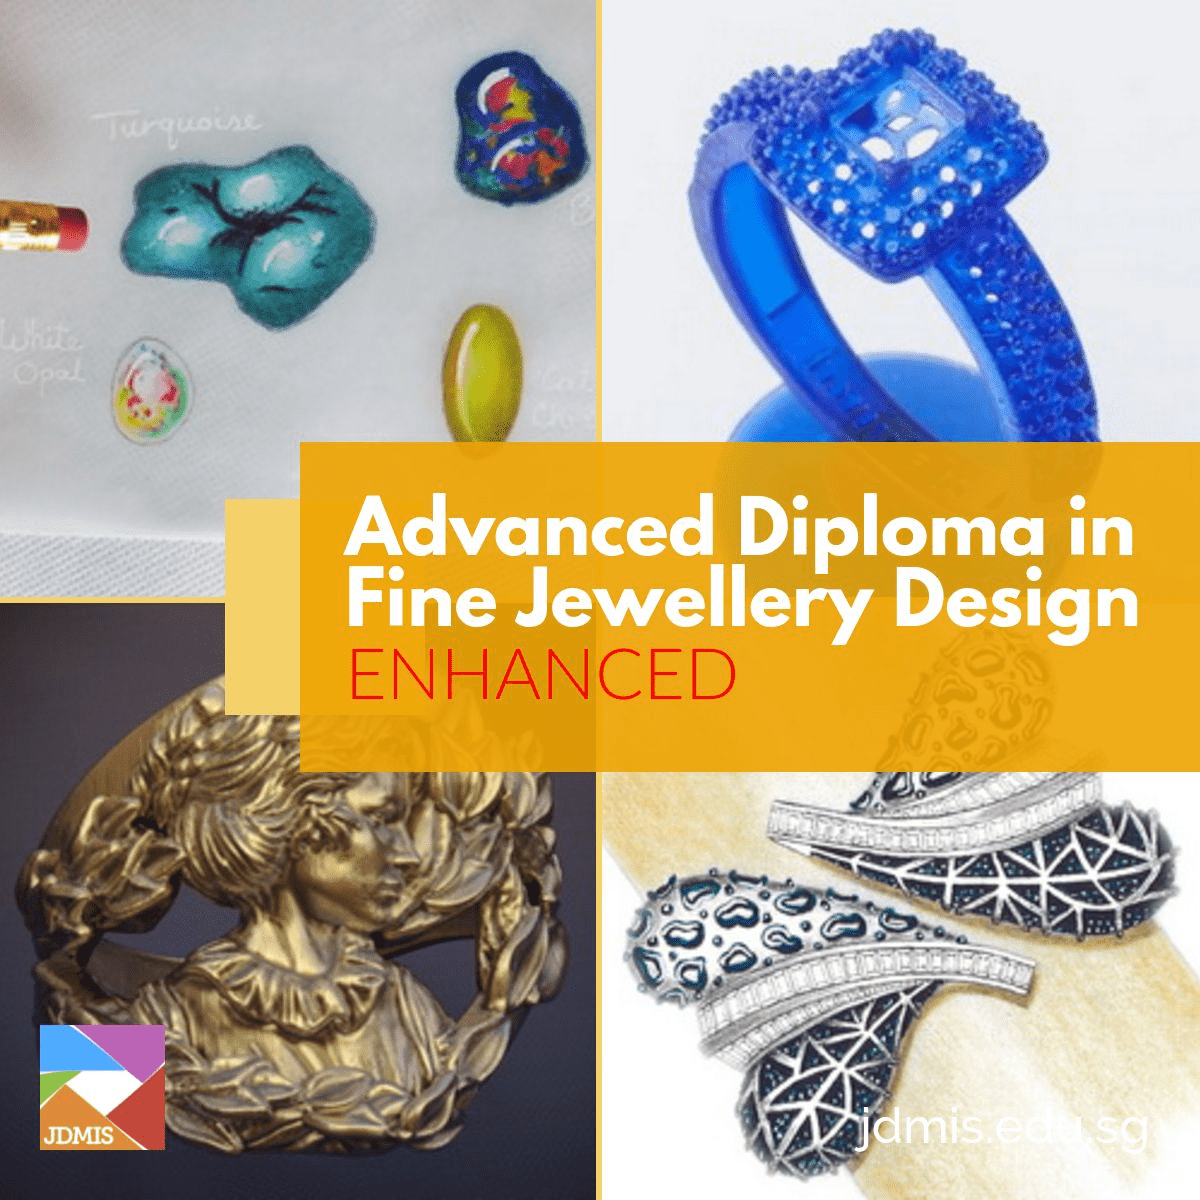 Trained jewellery designers need to understand their customers, and produce contemporary, fashionable designs, but also need to be able to confidently communicate...